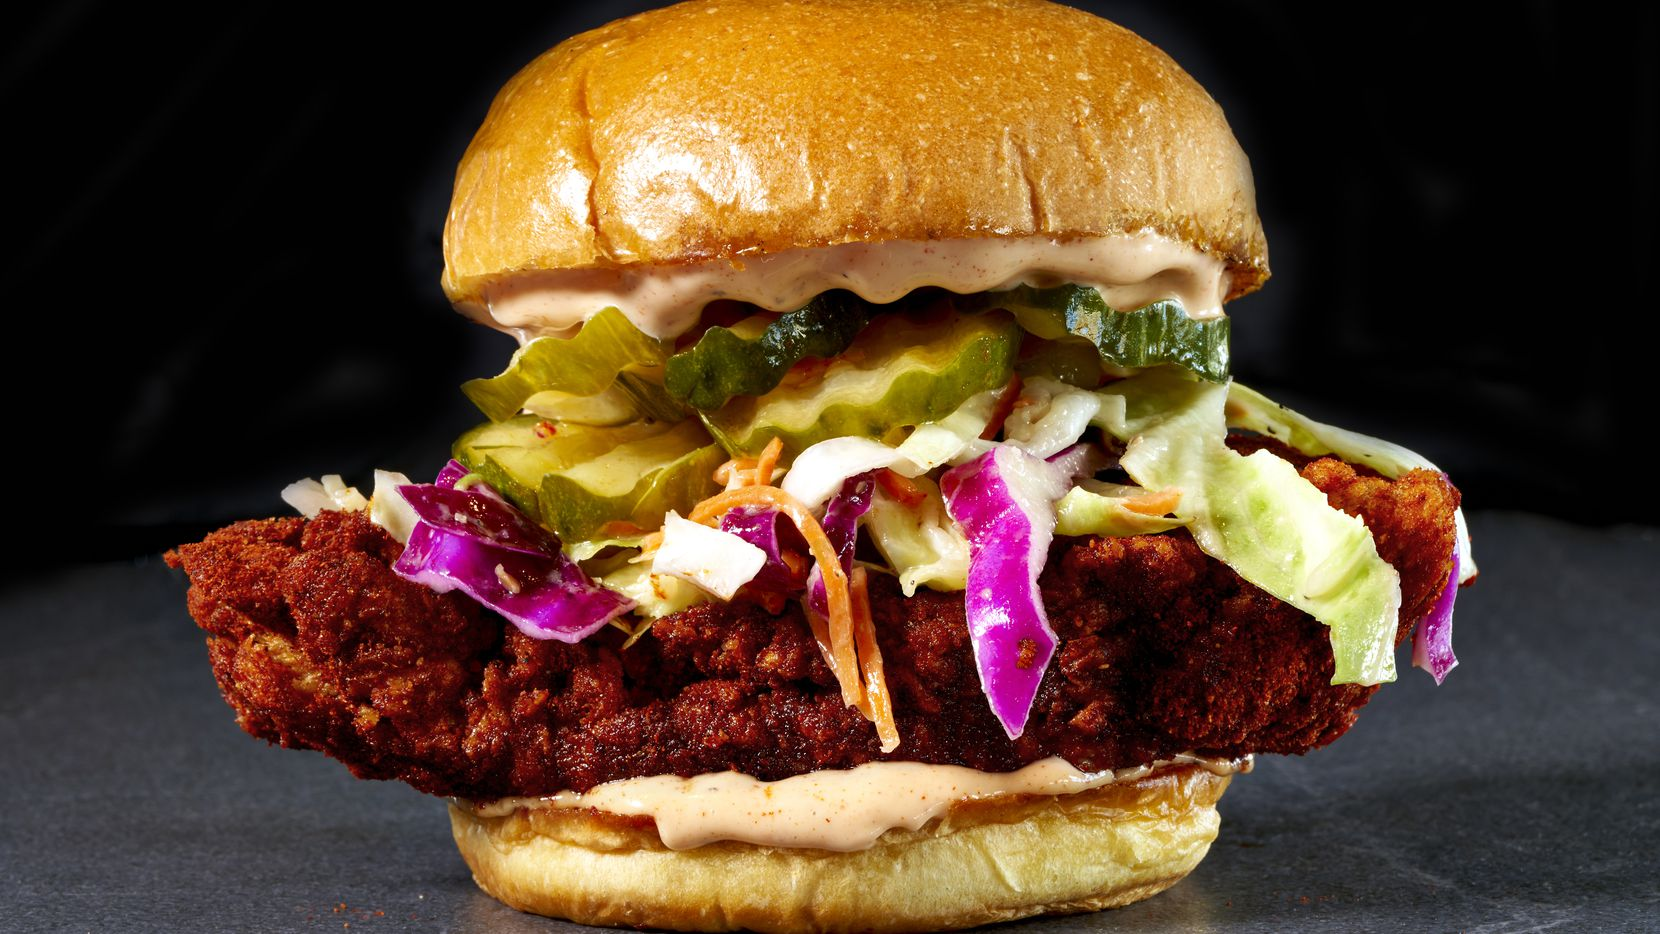 The Sandwich at Hot Chicks comes piled with fried chicken, vinegar slaw, pickles and Hot Chicks sauce. The first Hot Chicks is expected to open in December 2020 in West Plano.